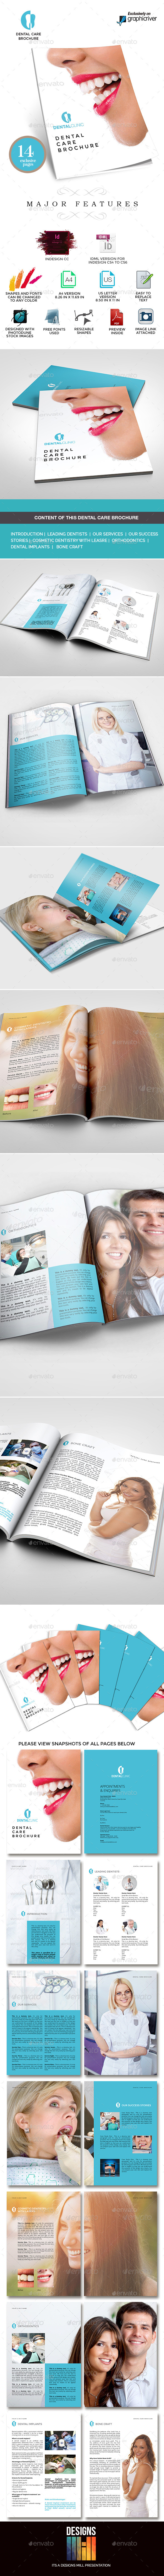 Dental Clinic Services or Care Brochure - Informational Brochures